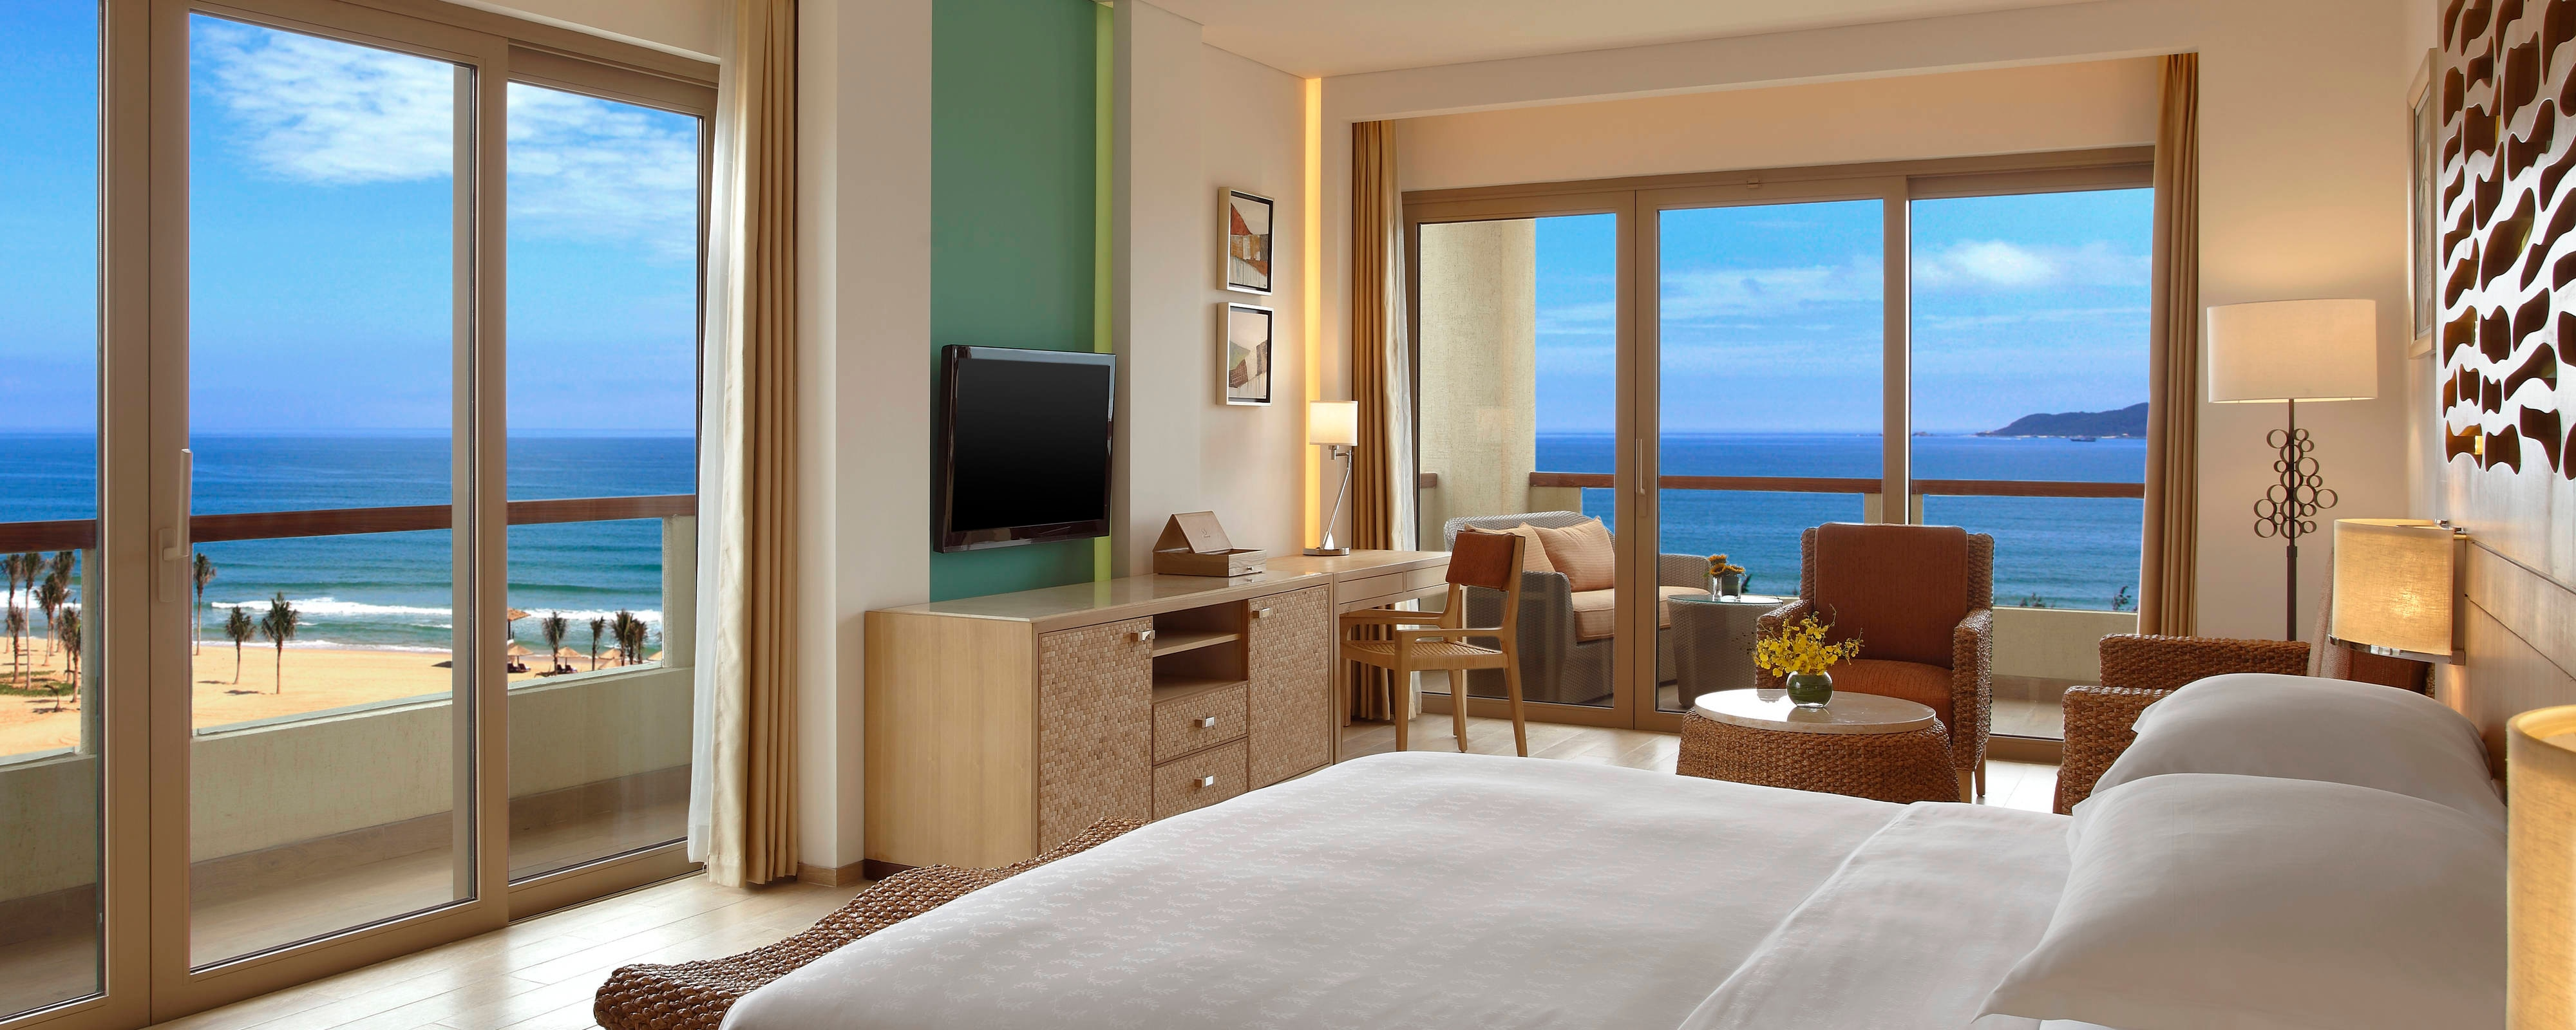 Grand Deluxe Sea View Suite